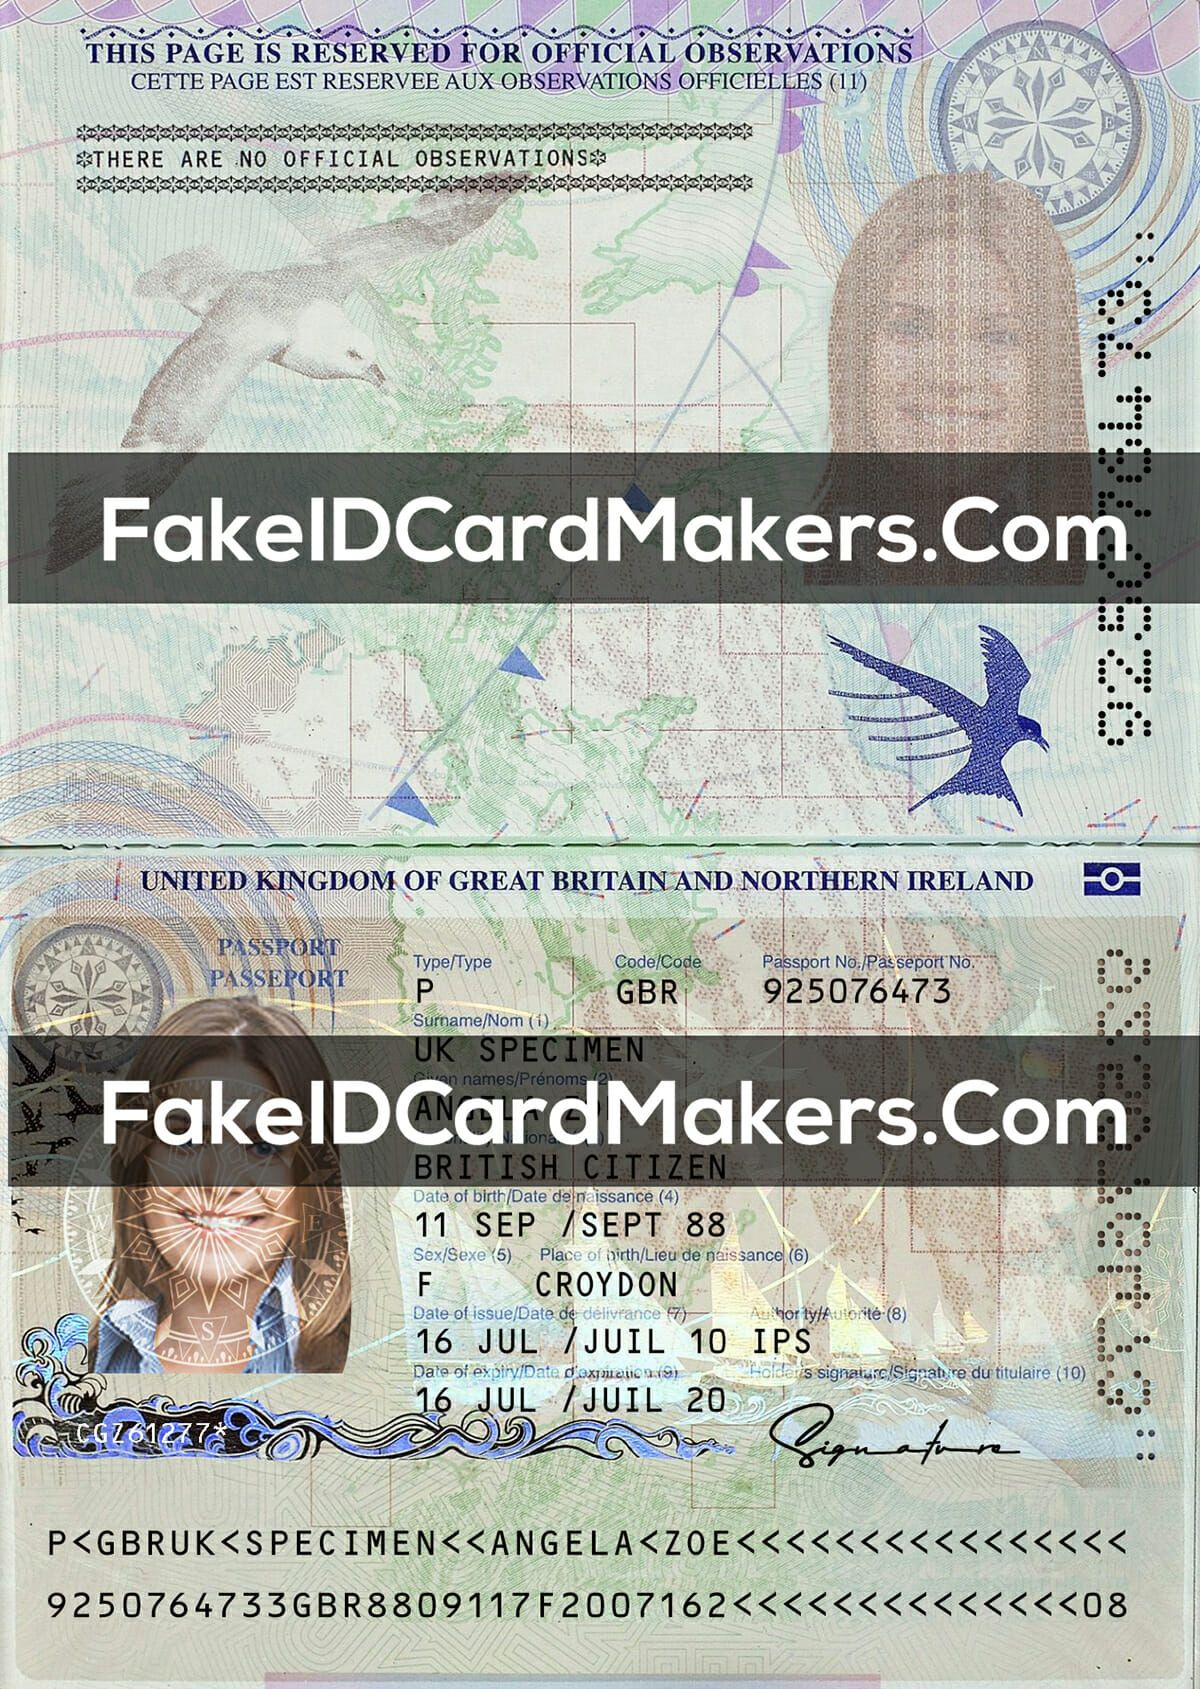 Uk Passport Template Psd New Fake Uk Proof Of Addpress In Fake Social Security Card Template Dow Passport Template Free Business Card Templates Card Template